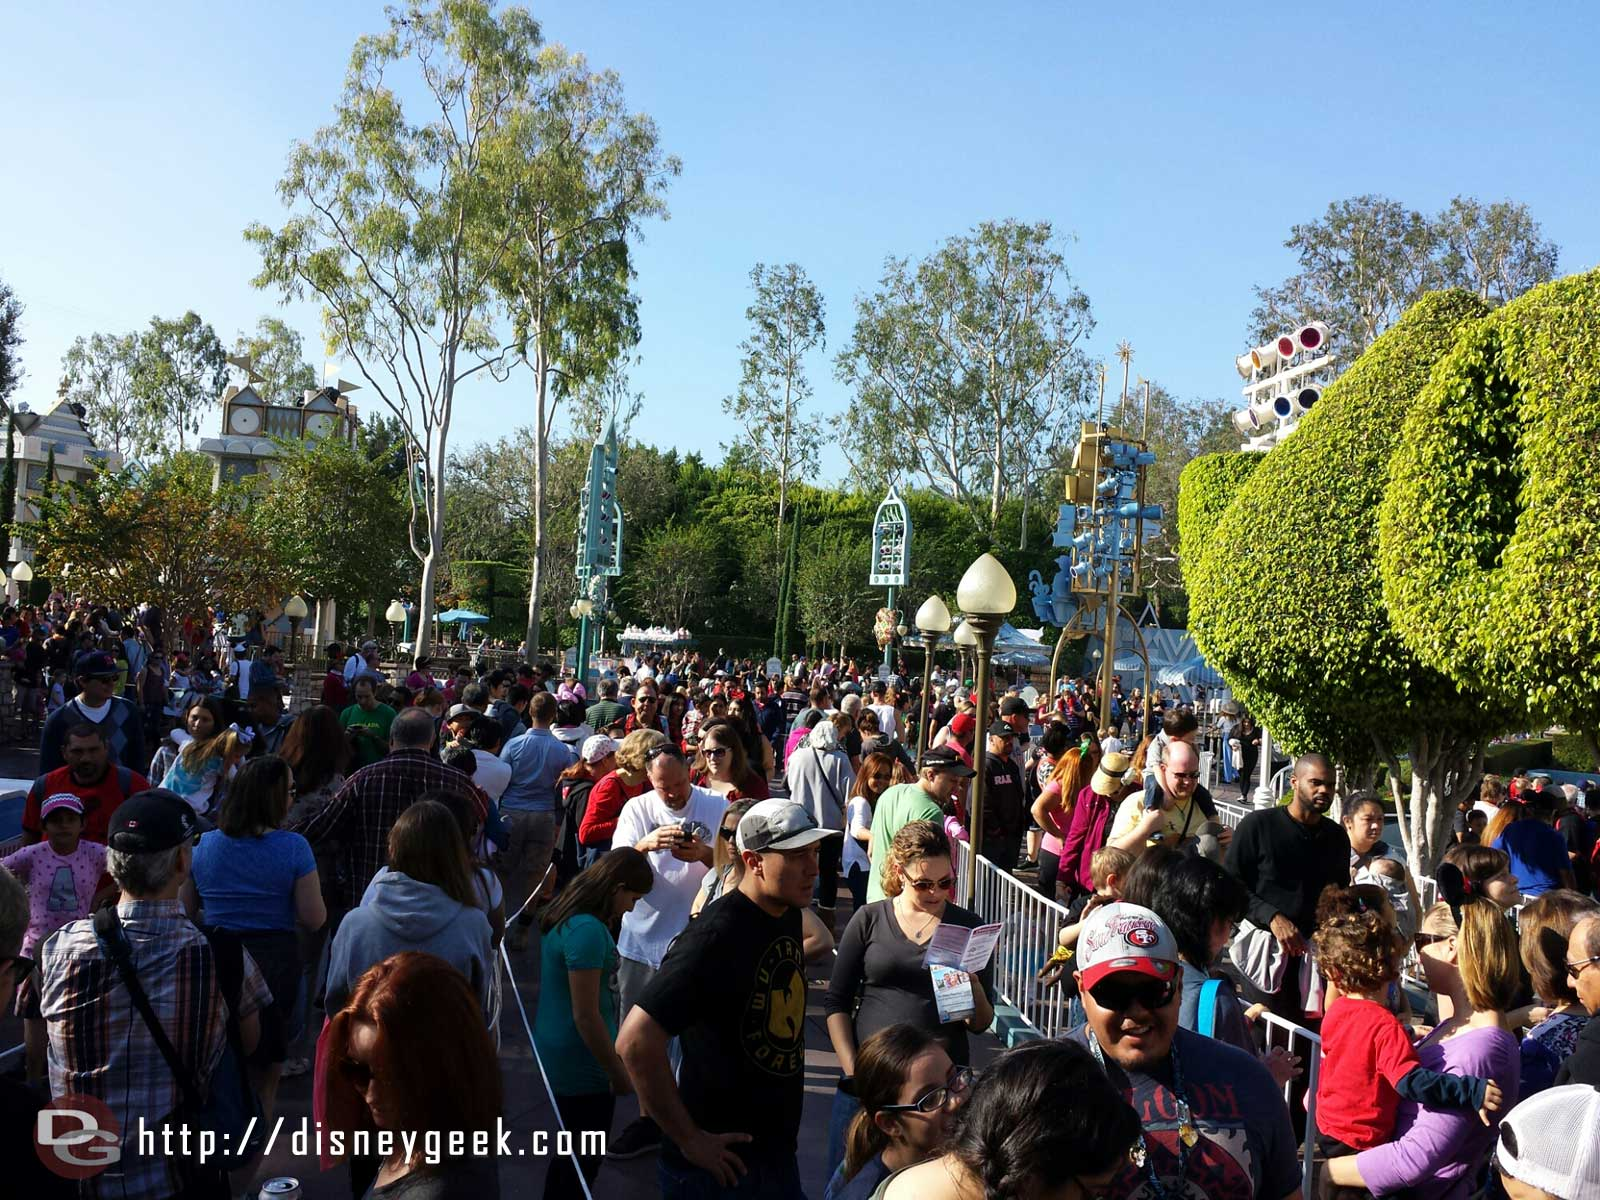 Small World Holiday wait is around 30 min this morning #Disneyland